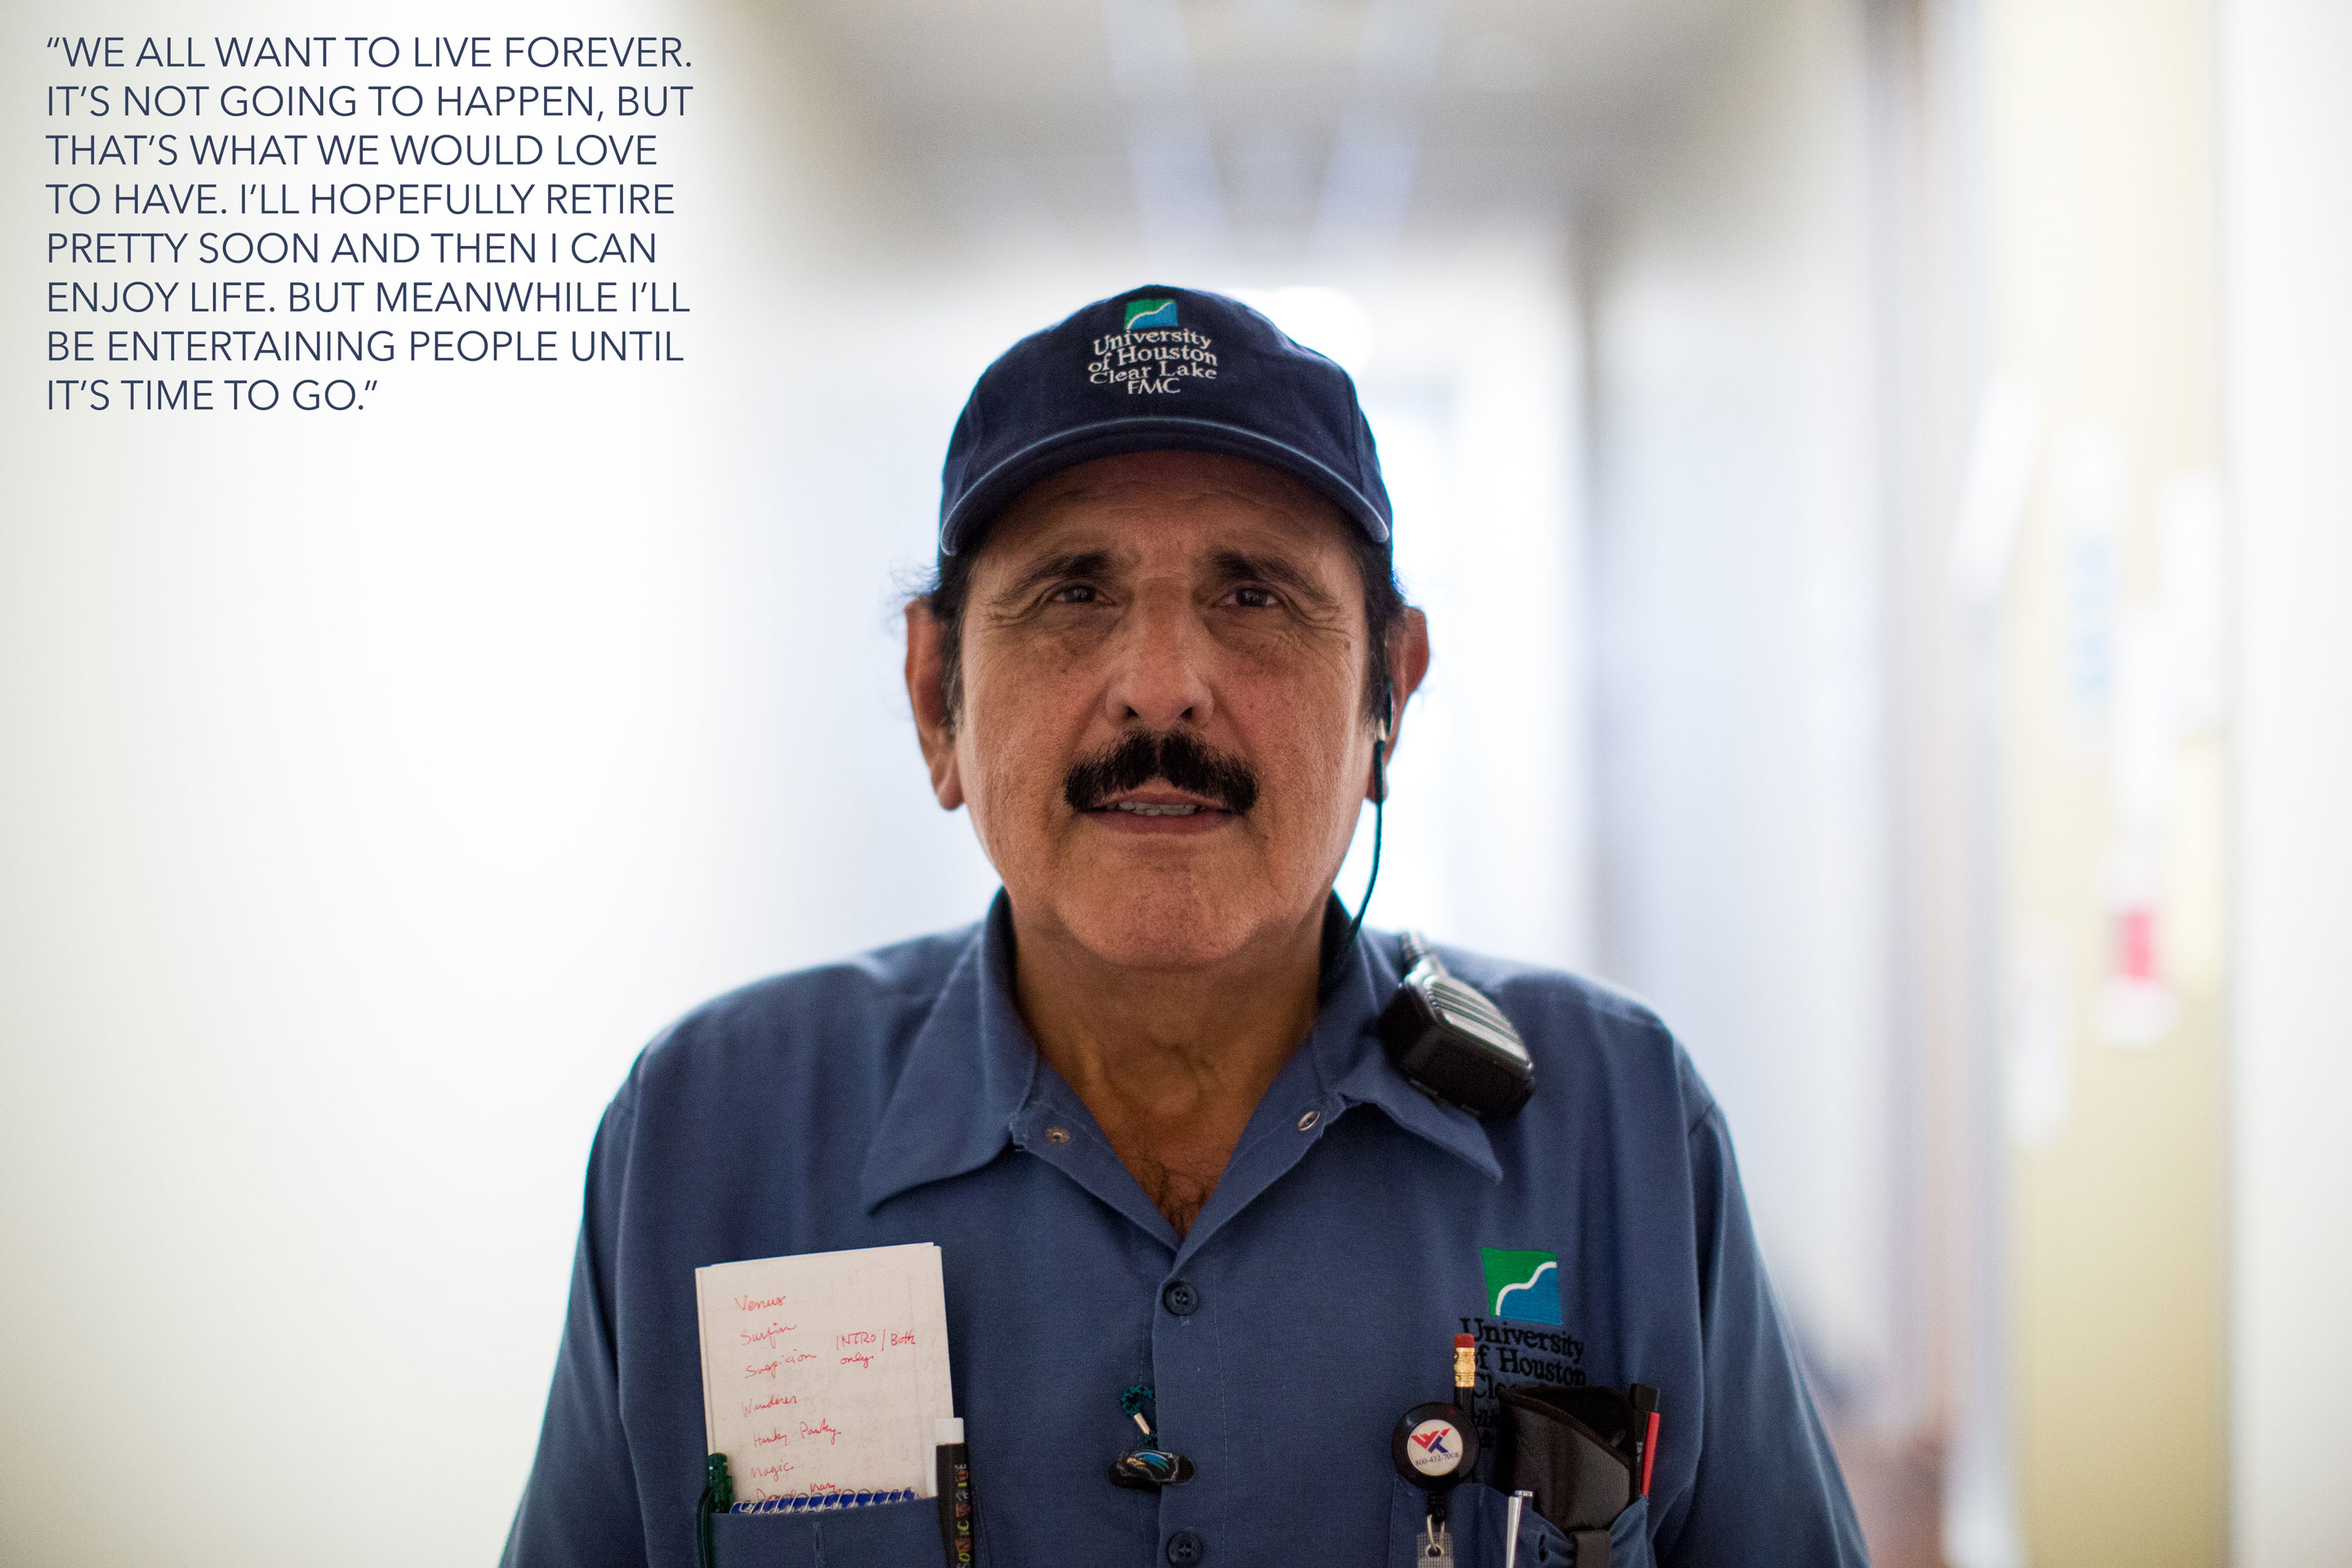 "Photo: UHCL staff member Gabriel Galvan stands in a hallway of the Bayou Building. Galvan says: ""We all want to live forever. It's not going to happen, but that's what we would love to have. I'll hopefully retire pretty soon and then I can enjoy life. But meanwhile, I'll be entertaining people until it's time to go."" Photo & interview by The Signal reporters Maegan Hufstetler and Travis Pennington."